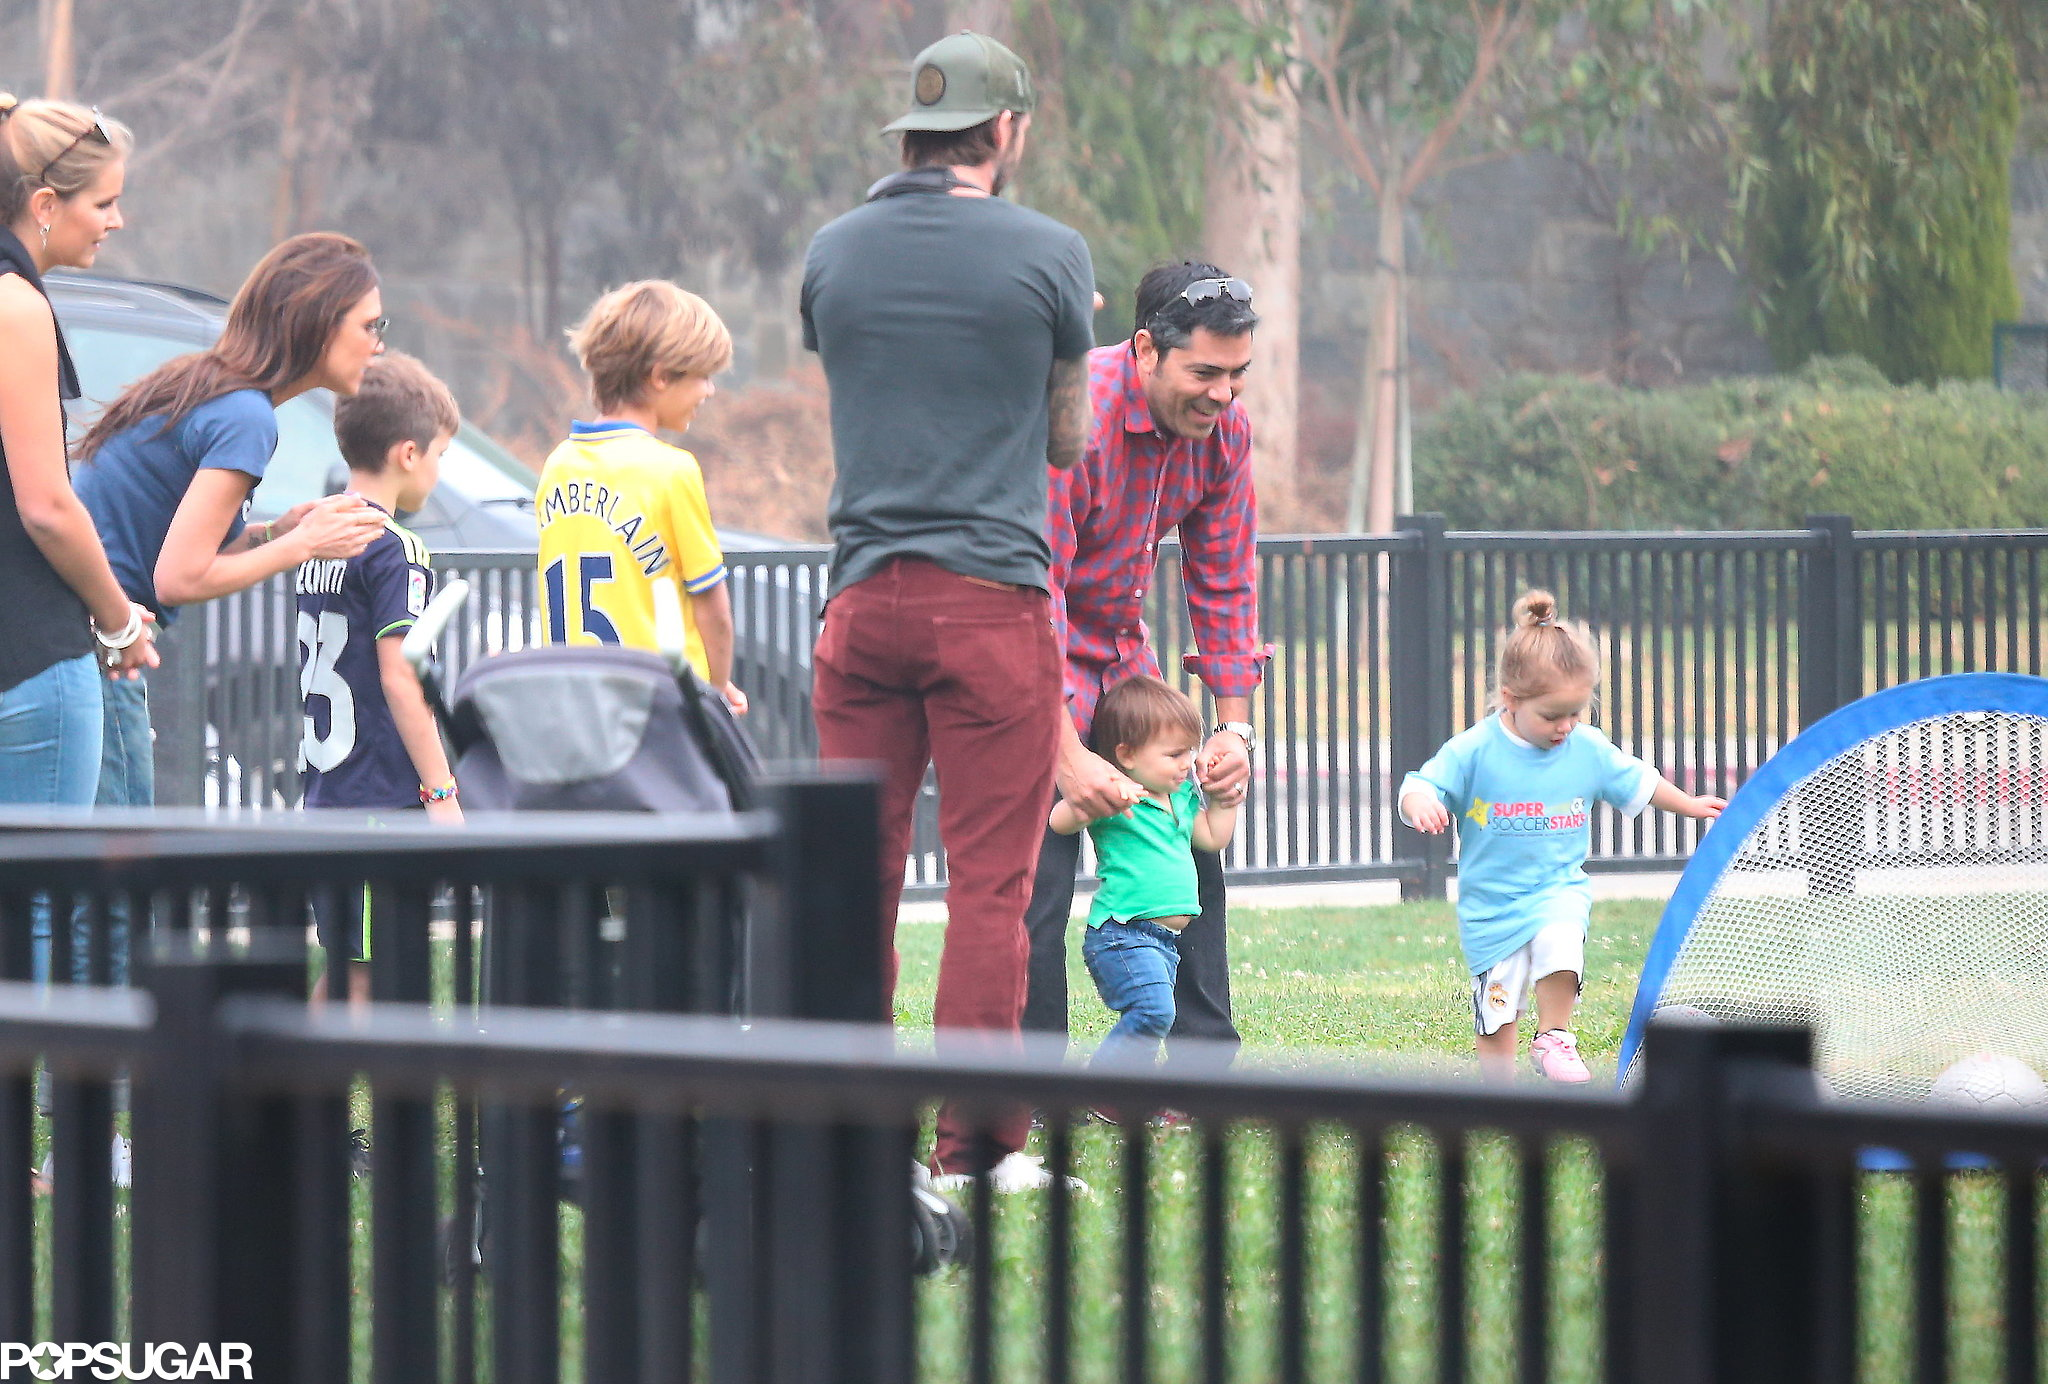 Harper Beckham played soccer while her parents, David Beckham and Victoria Beckham, looked on.